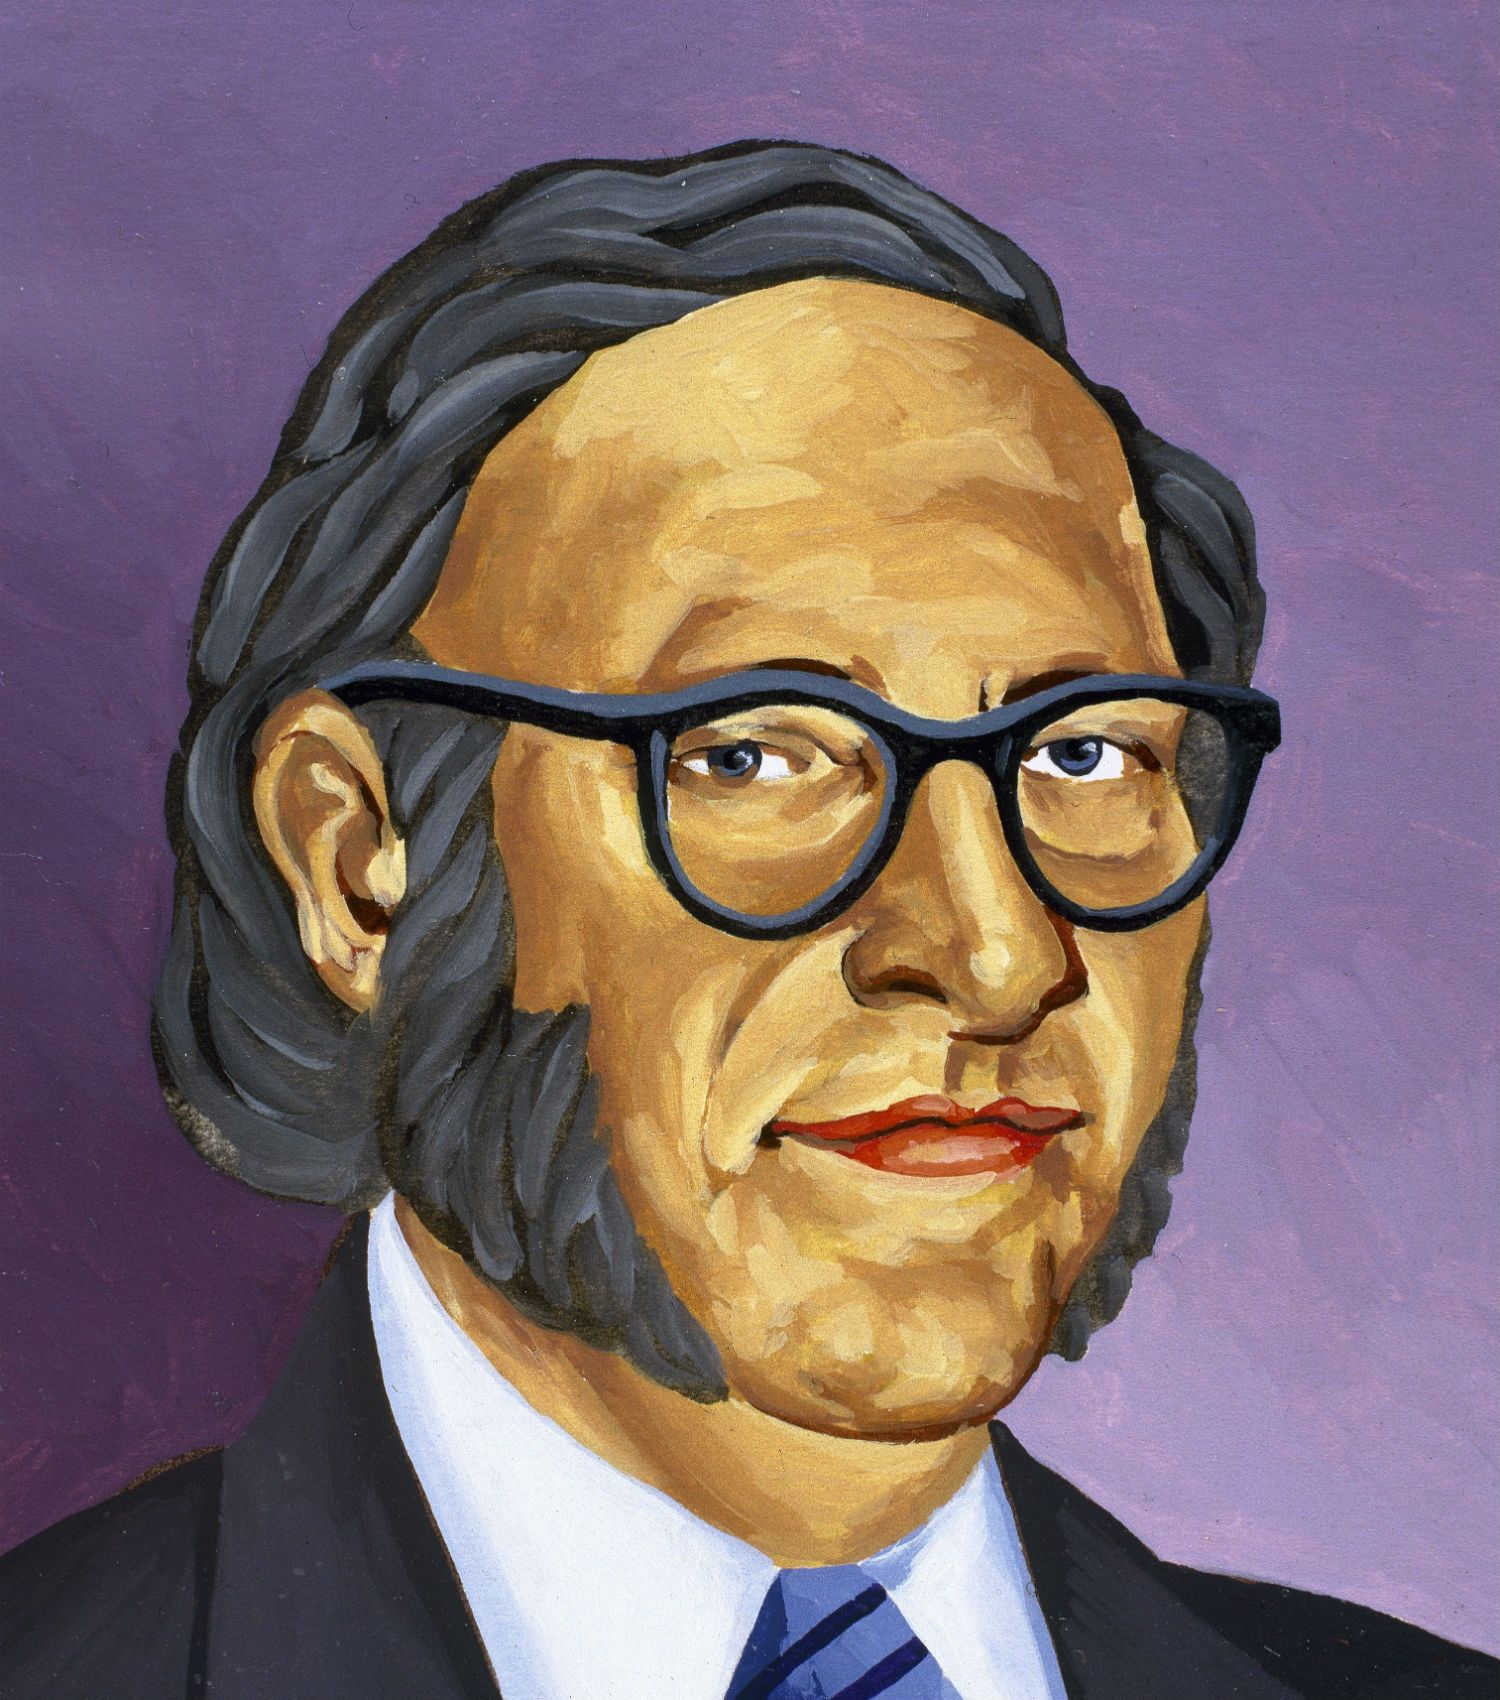 Read Isaac Asimov's Essay on How to Be Creative